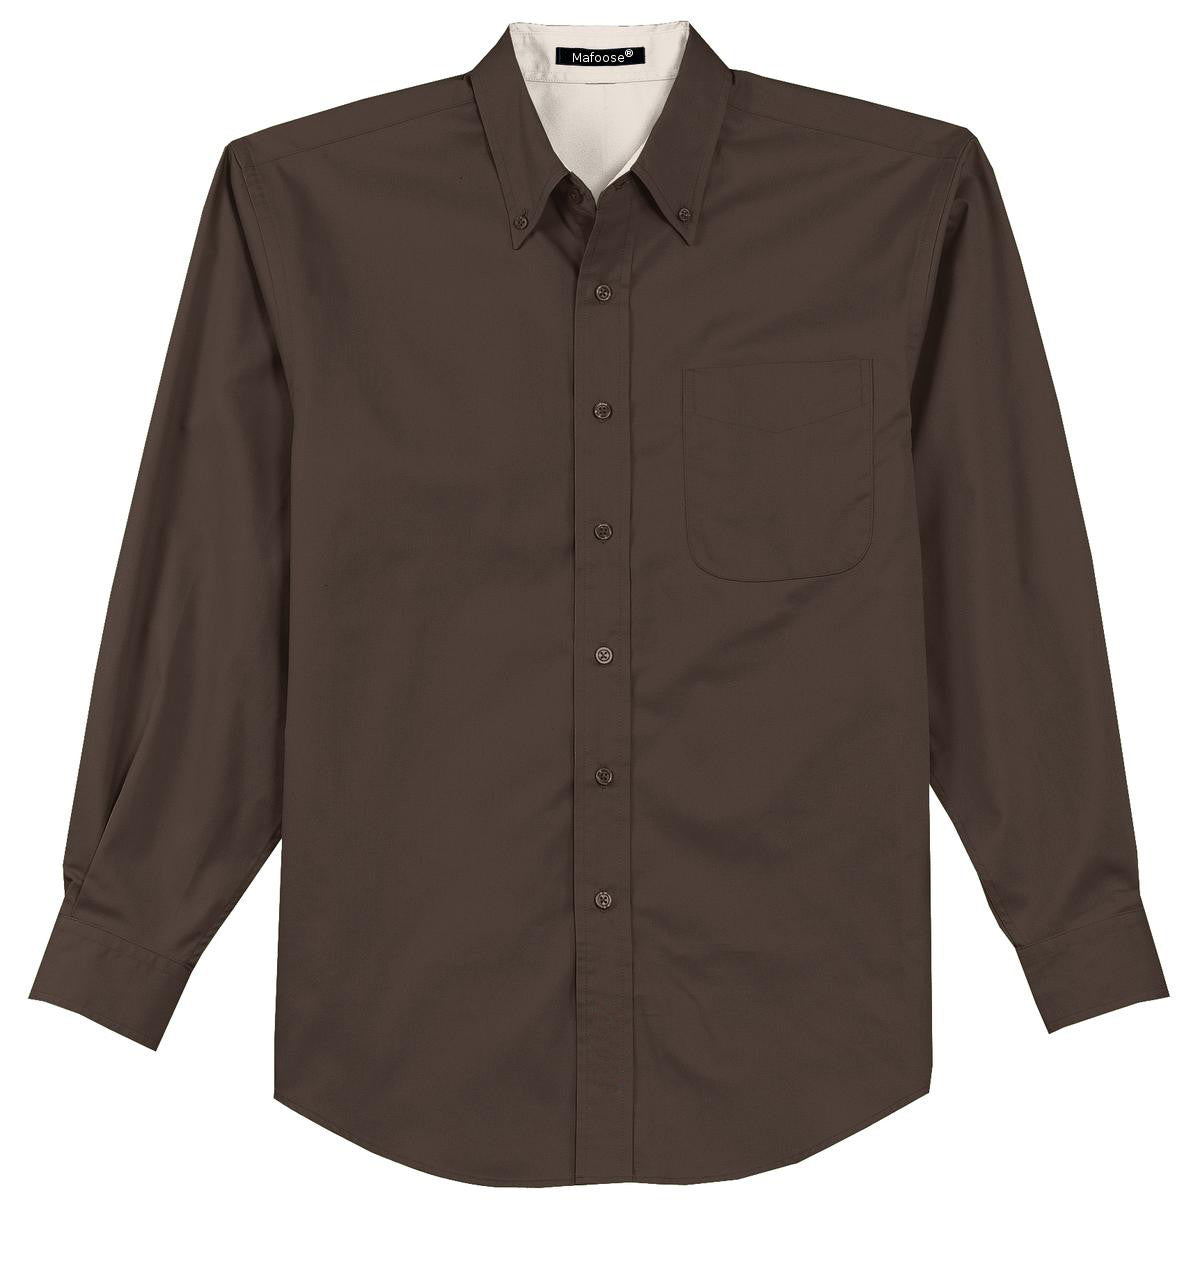 Mafoose Men's Tall Long Sleeve Easy Care Shirt Coffee Bean/ Light Stone-Front